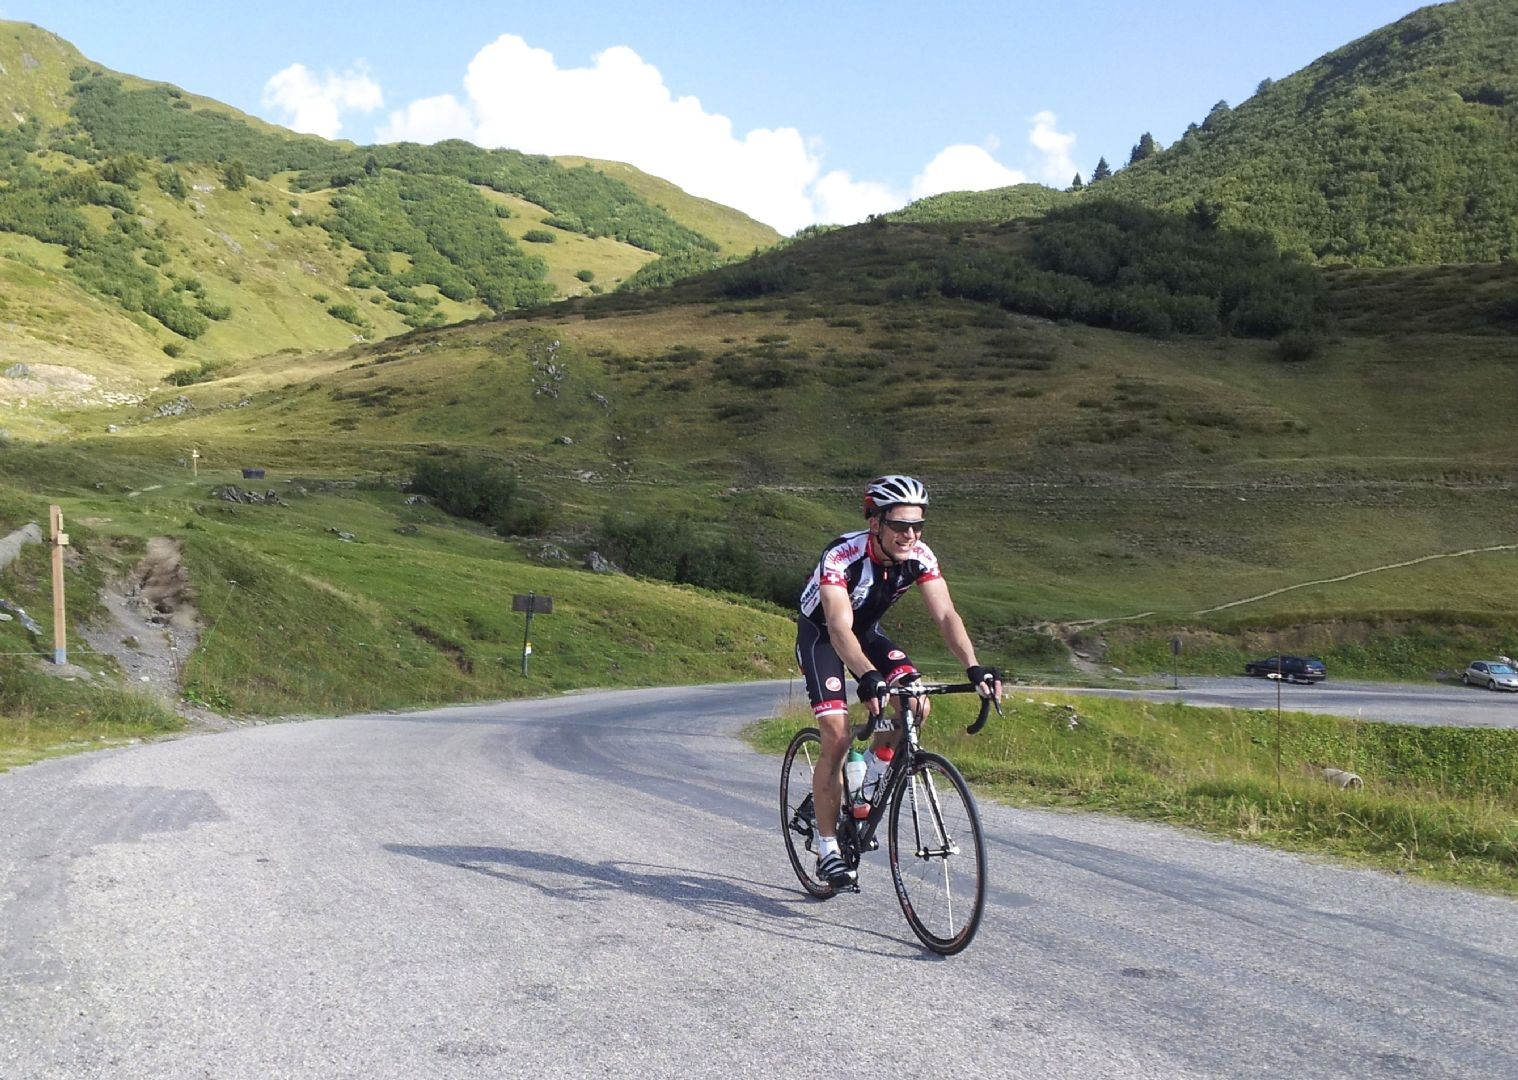 _Staff.72.19311.jpg - France - Classic Alps Passes - Alpine Introduction - Guided Road Cycling Holiday - Road Cycling